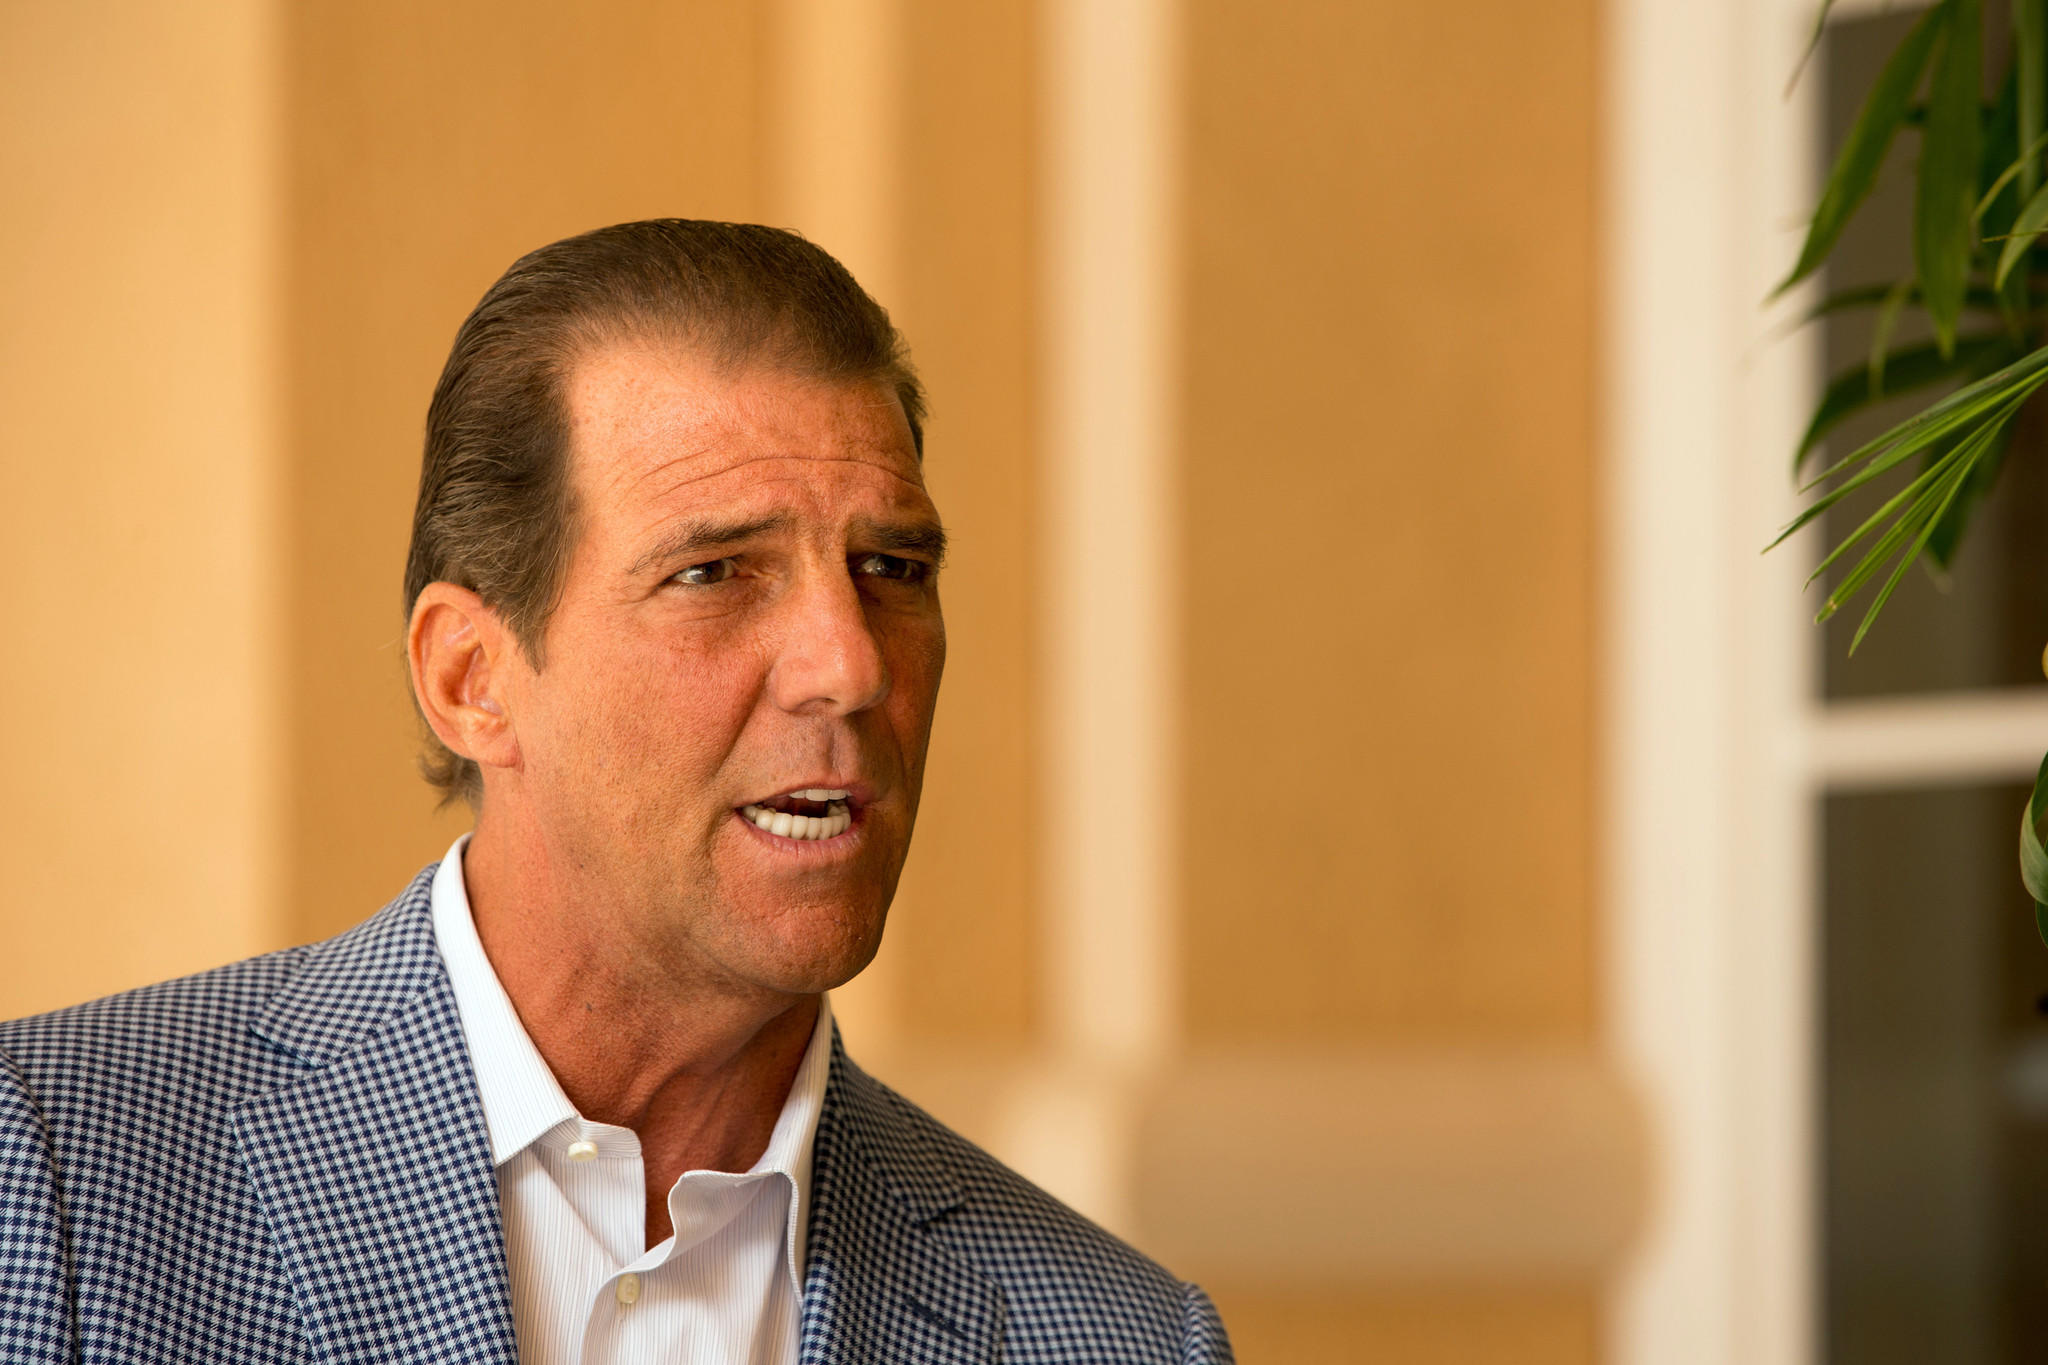 Baltimore Ravens owner Steve Bisciotti answers questions during an interview at the NFL Annual Meetings.